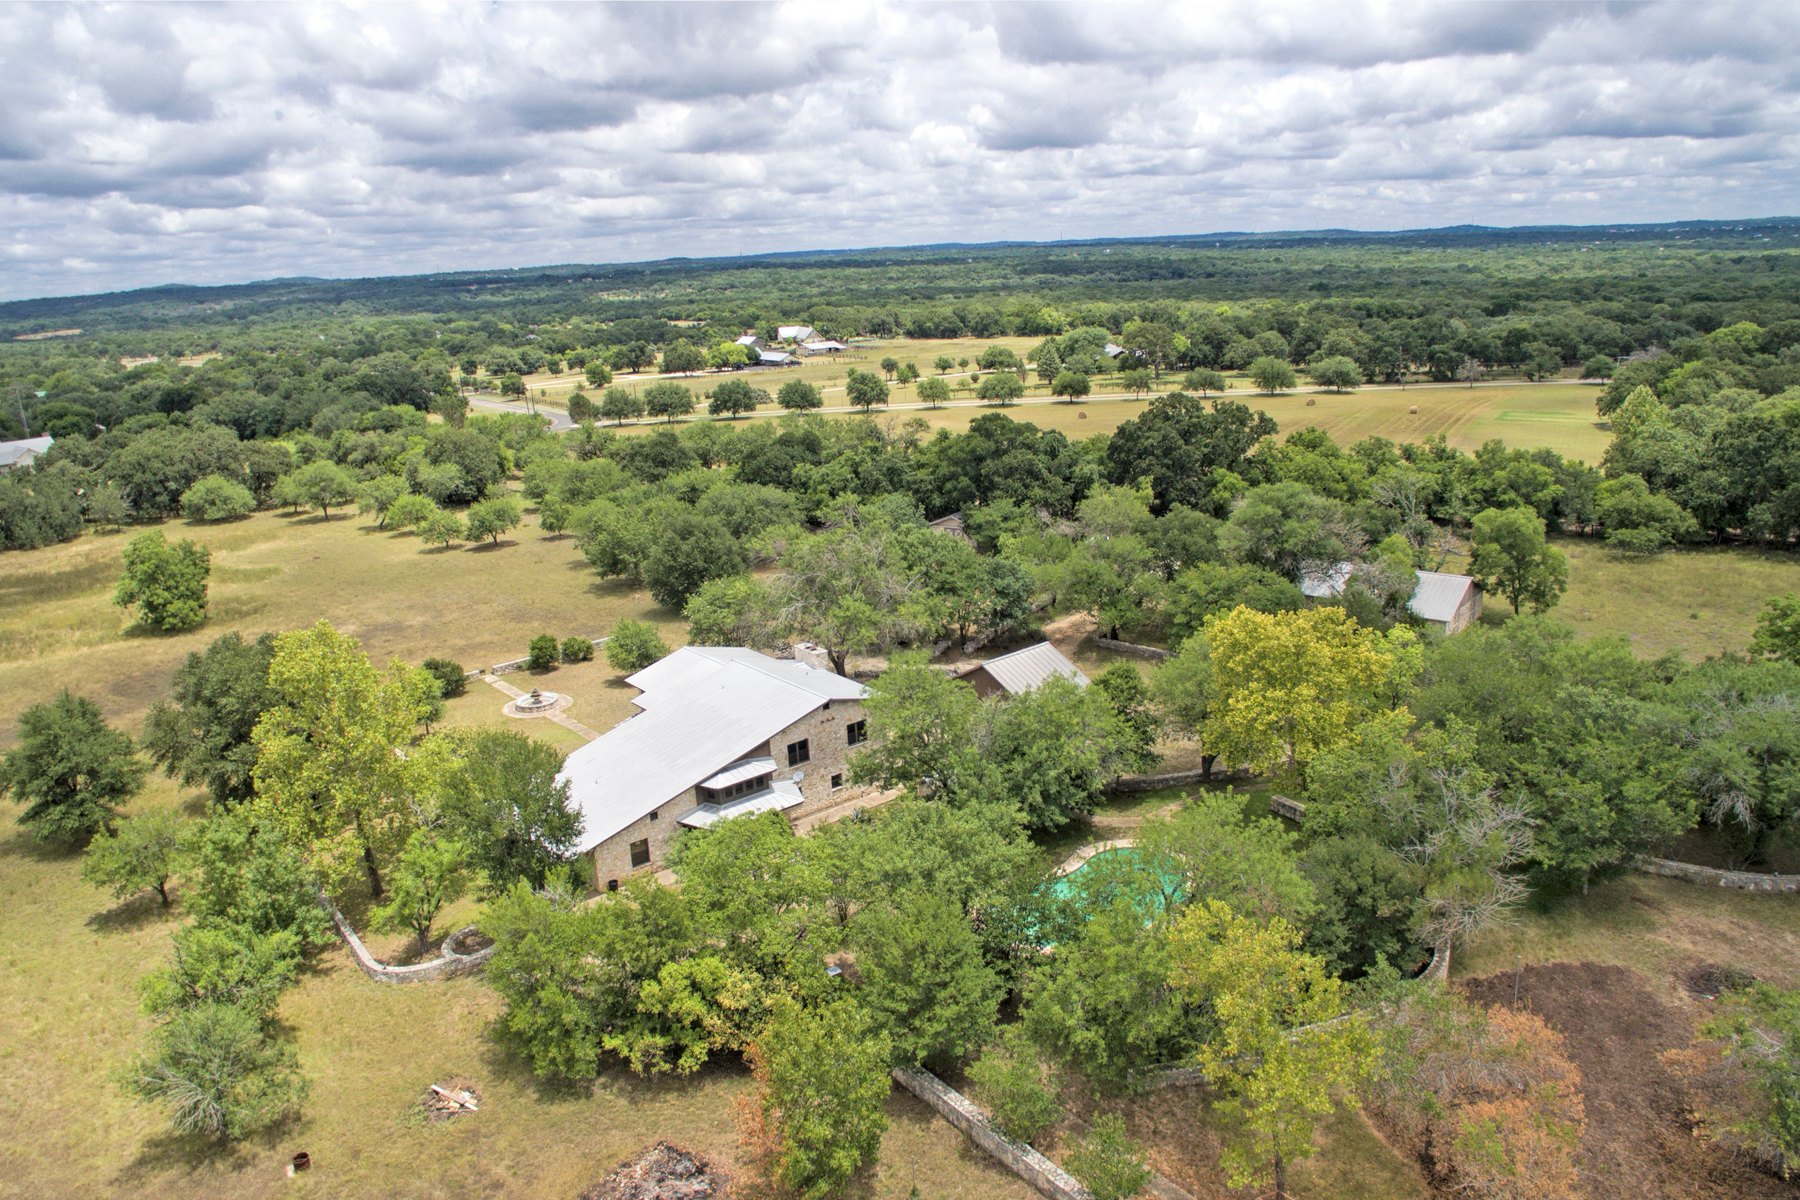 Single Family Home for Sale at Rock Home on 10+ Acres In Boerne 125 Ranch Dr, Boerne, Texas, 78015 United States